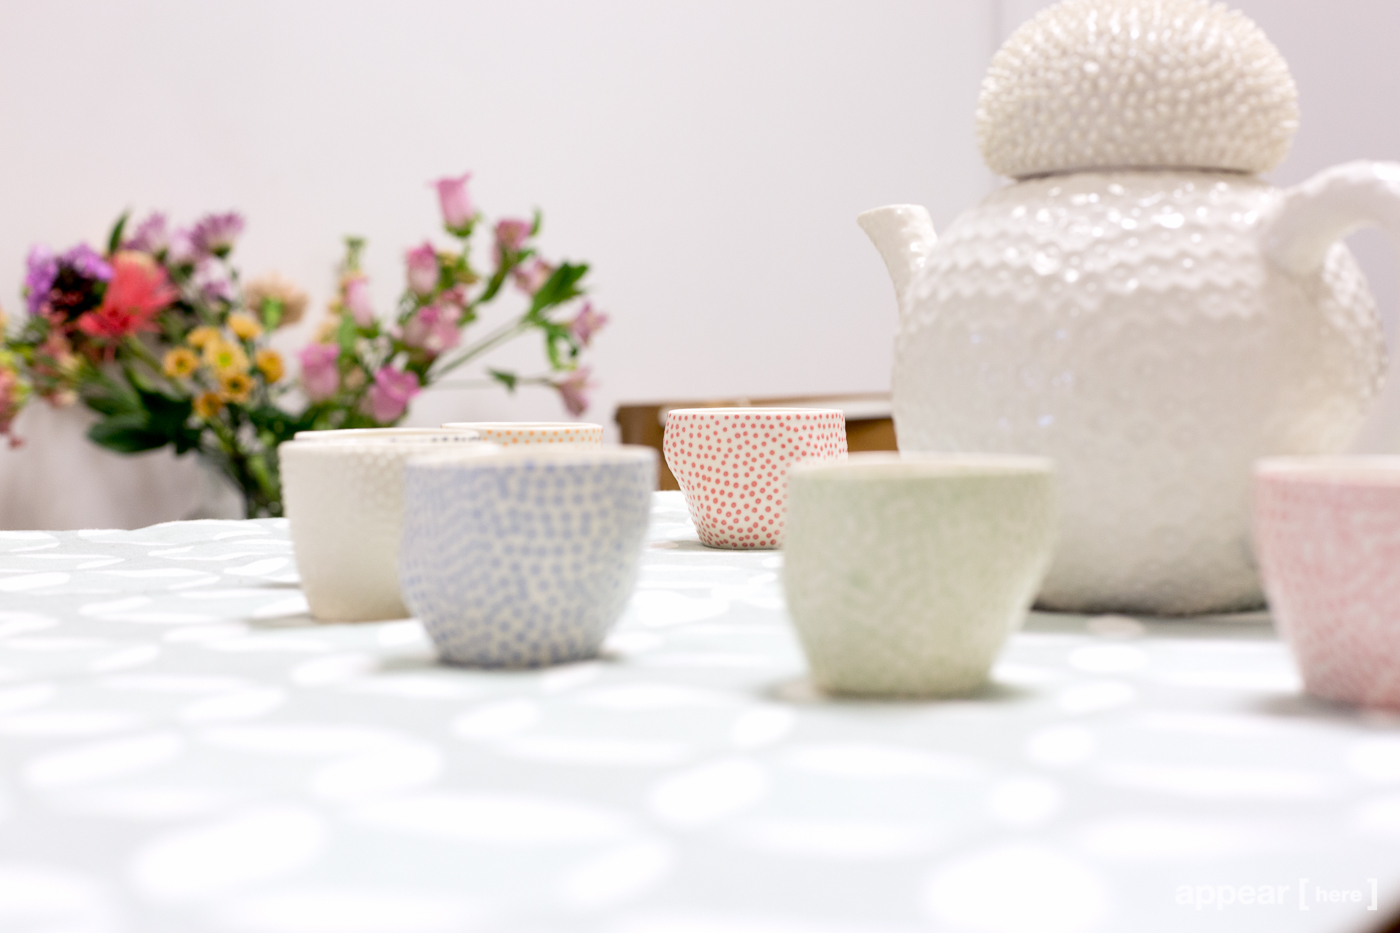 Creative-Clerkenwell-Pop-Up-Shop-CDW2016-Ikuko-Iwamoto-Georgia-Bosson-AppearHere.jpg